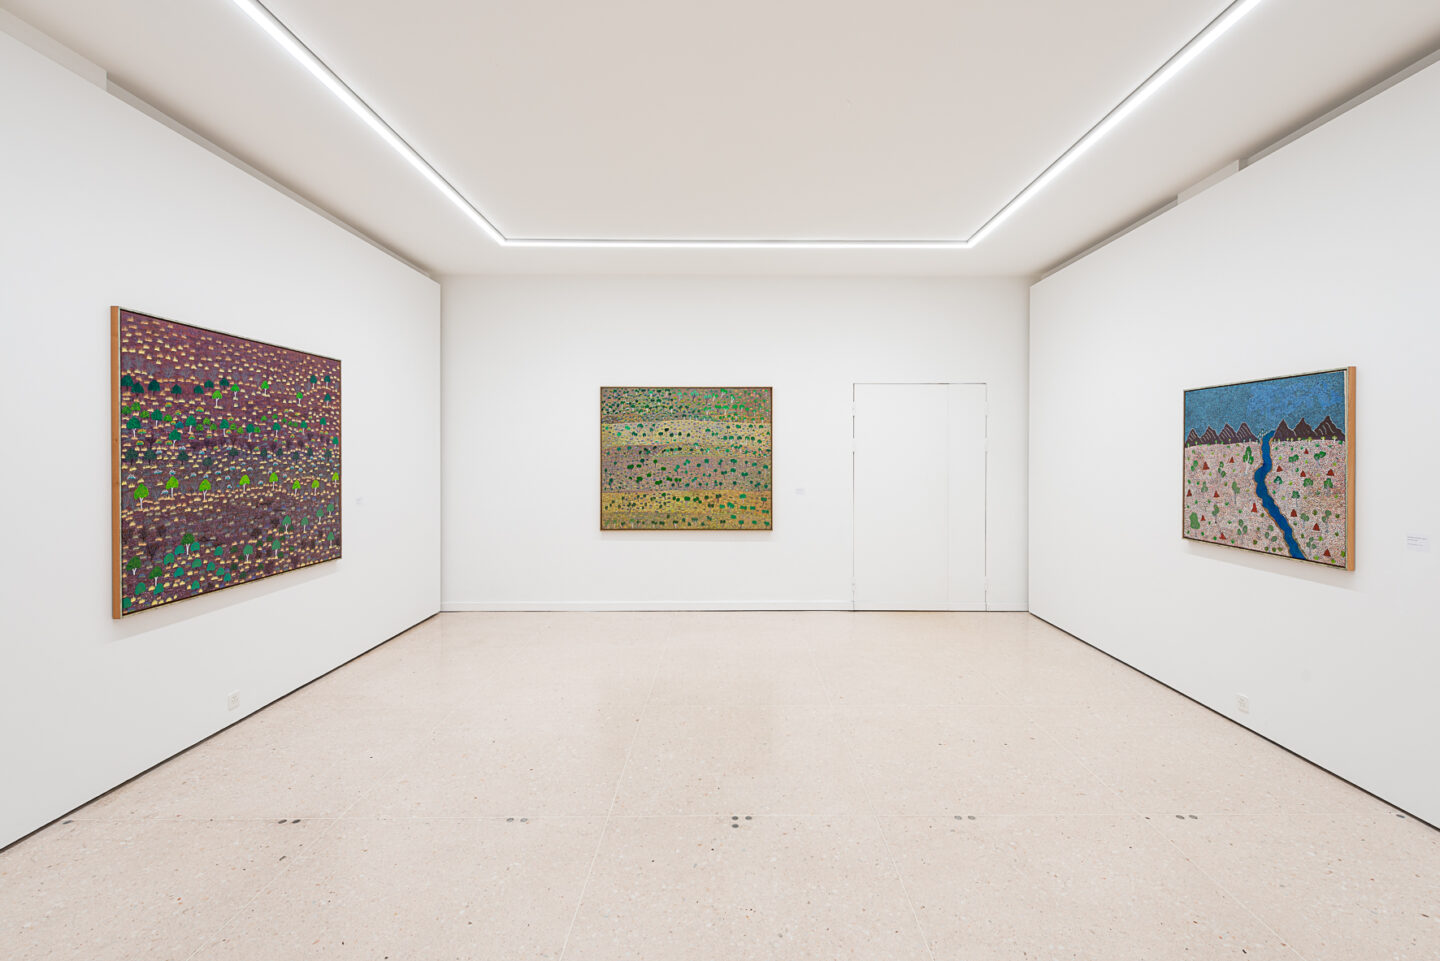 Exhibition View Groupshow «My Mothers Country; view on Michele Holmes Apwerl, Apmer Mwerranker, 2006; Lily Morton Akemarr, Ilwemp Ghost Gums, 2004; Rita Beasley Apetyarr, Holy River, 2003» at Kunsthaus Zug, Zug, 2019 / Photo: Jorit Aust / Courtesy: the artists, Collection Clement and Kunsthaus Zug